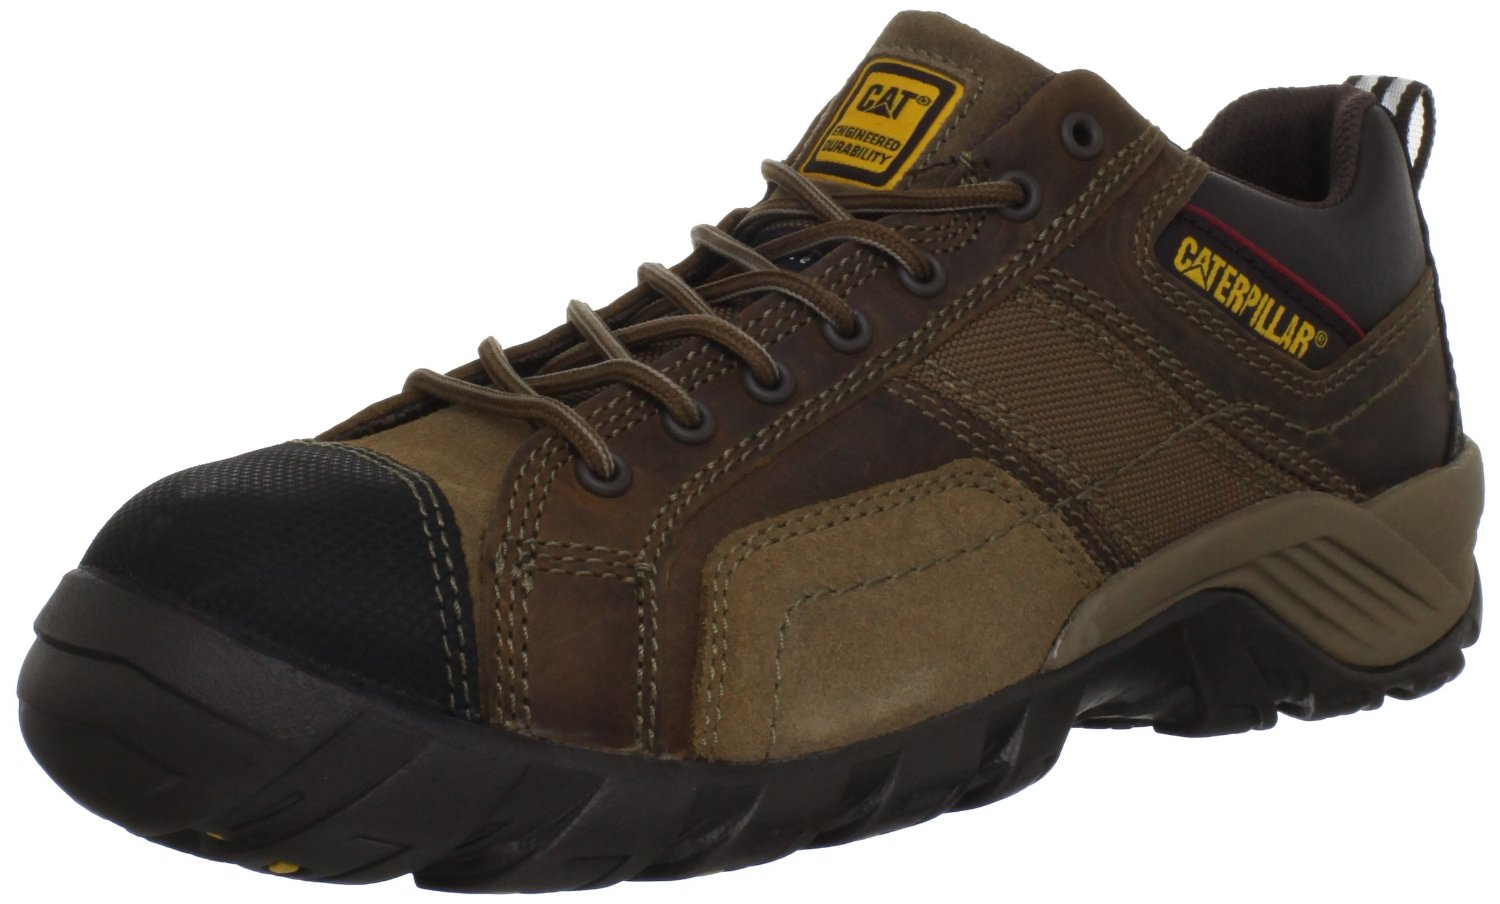 Caterpillar Mens Caterpillar Argon Work Safety Shoes Composite Toe Oxford Leather Wide (EE) Dark Brown P89957 at Sears.com